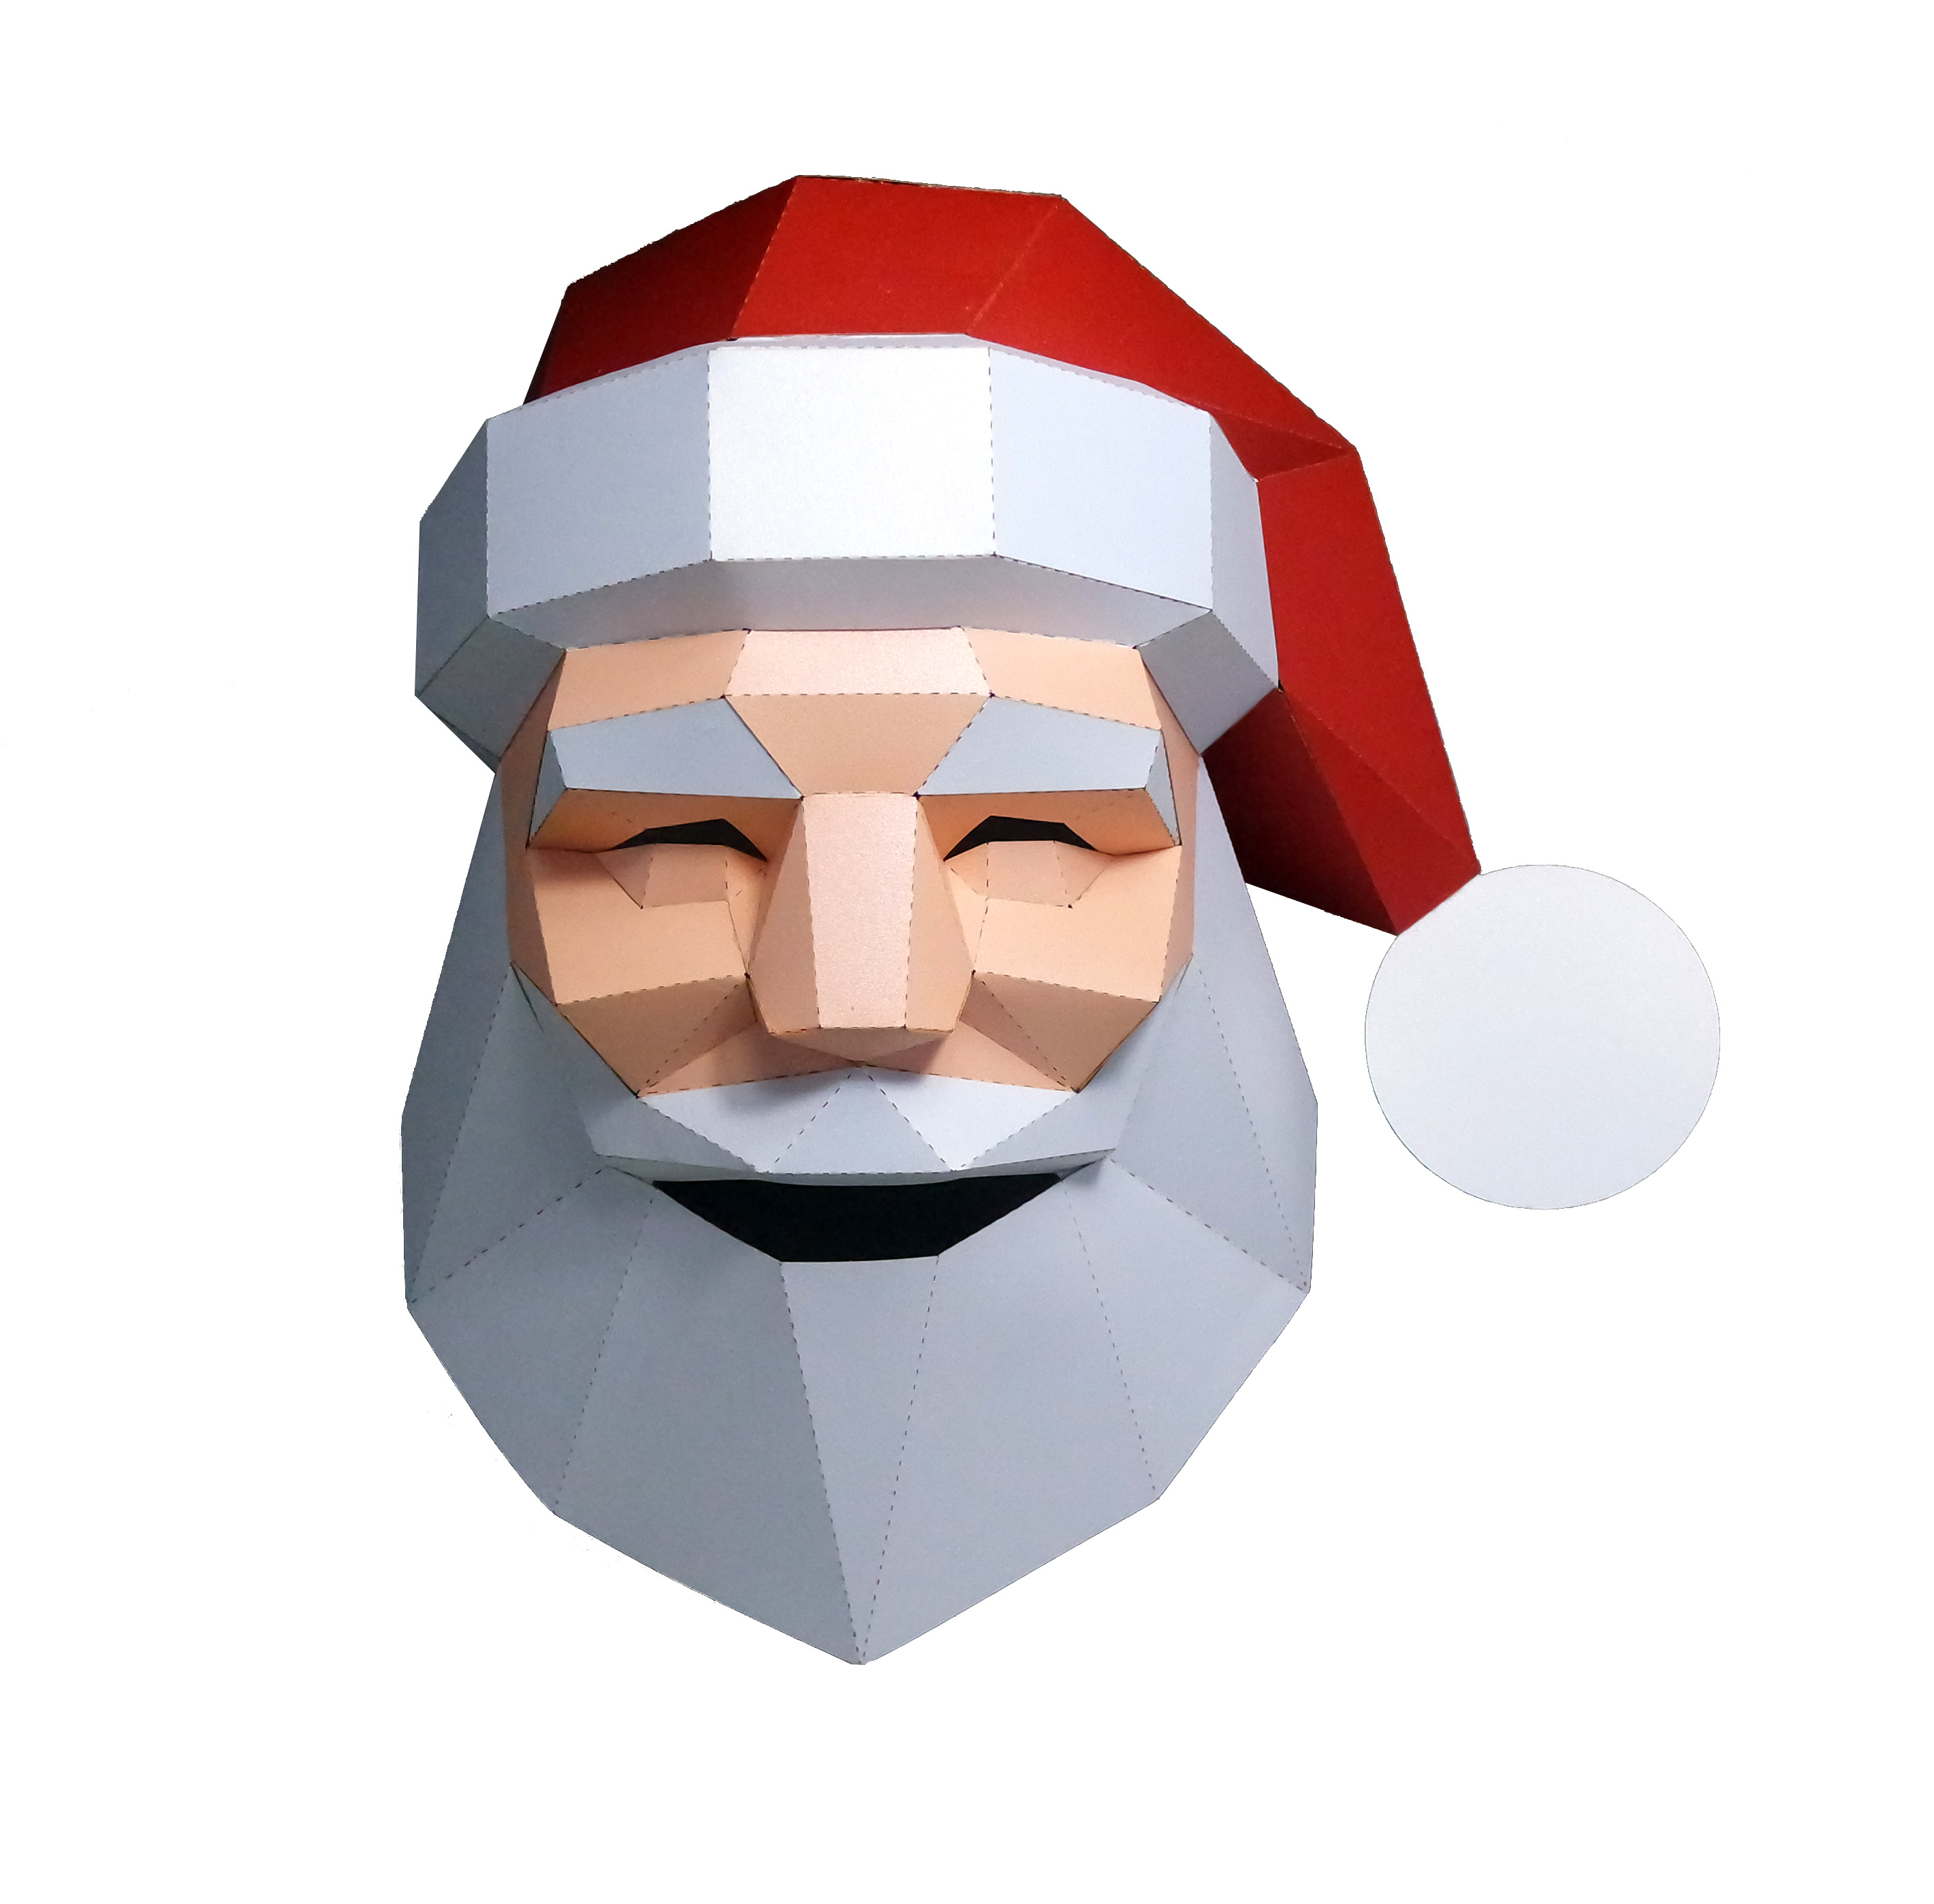 3d Paper Mask Fashion Santa Claus Costume Cosplay Diy Paper Craft Model Mask Christmas Halloween Prom Party Gift Card Model Building Sets Aliexpress